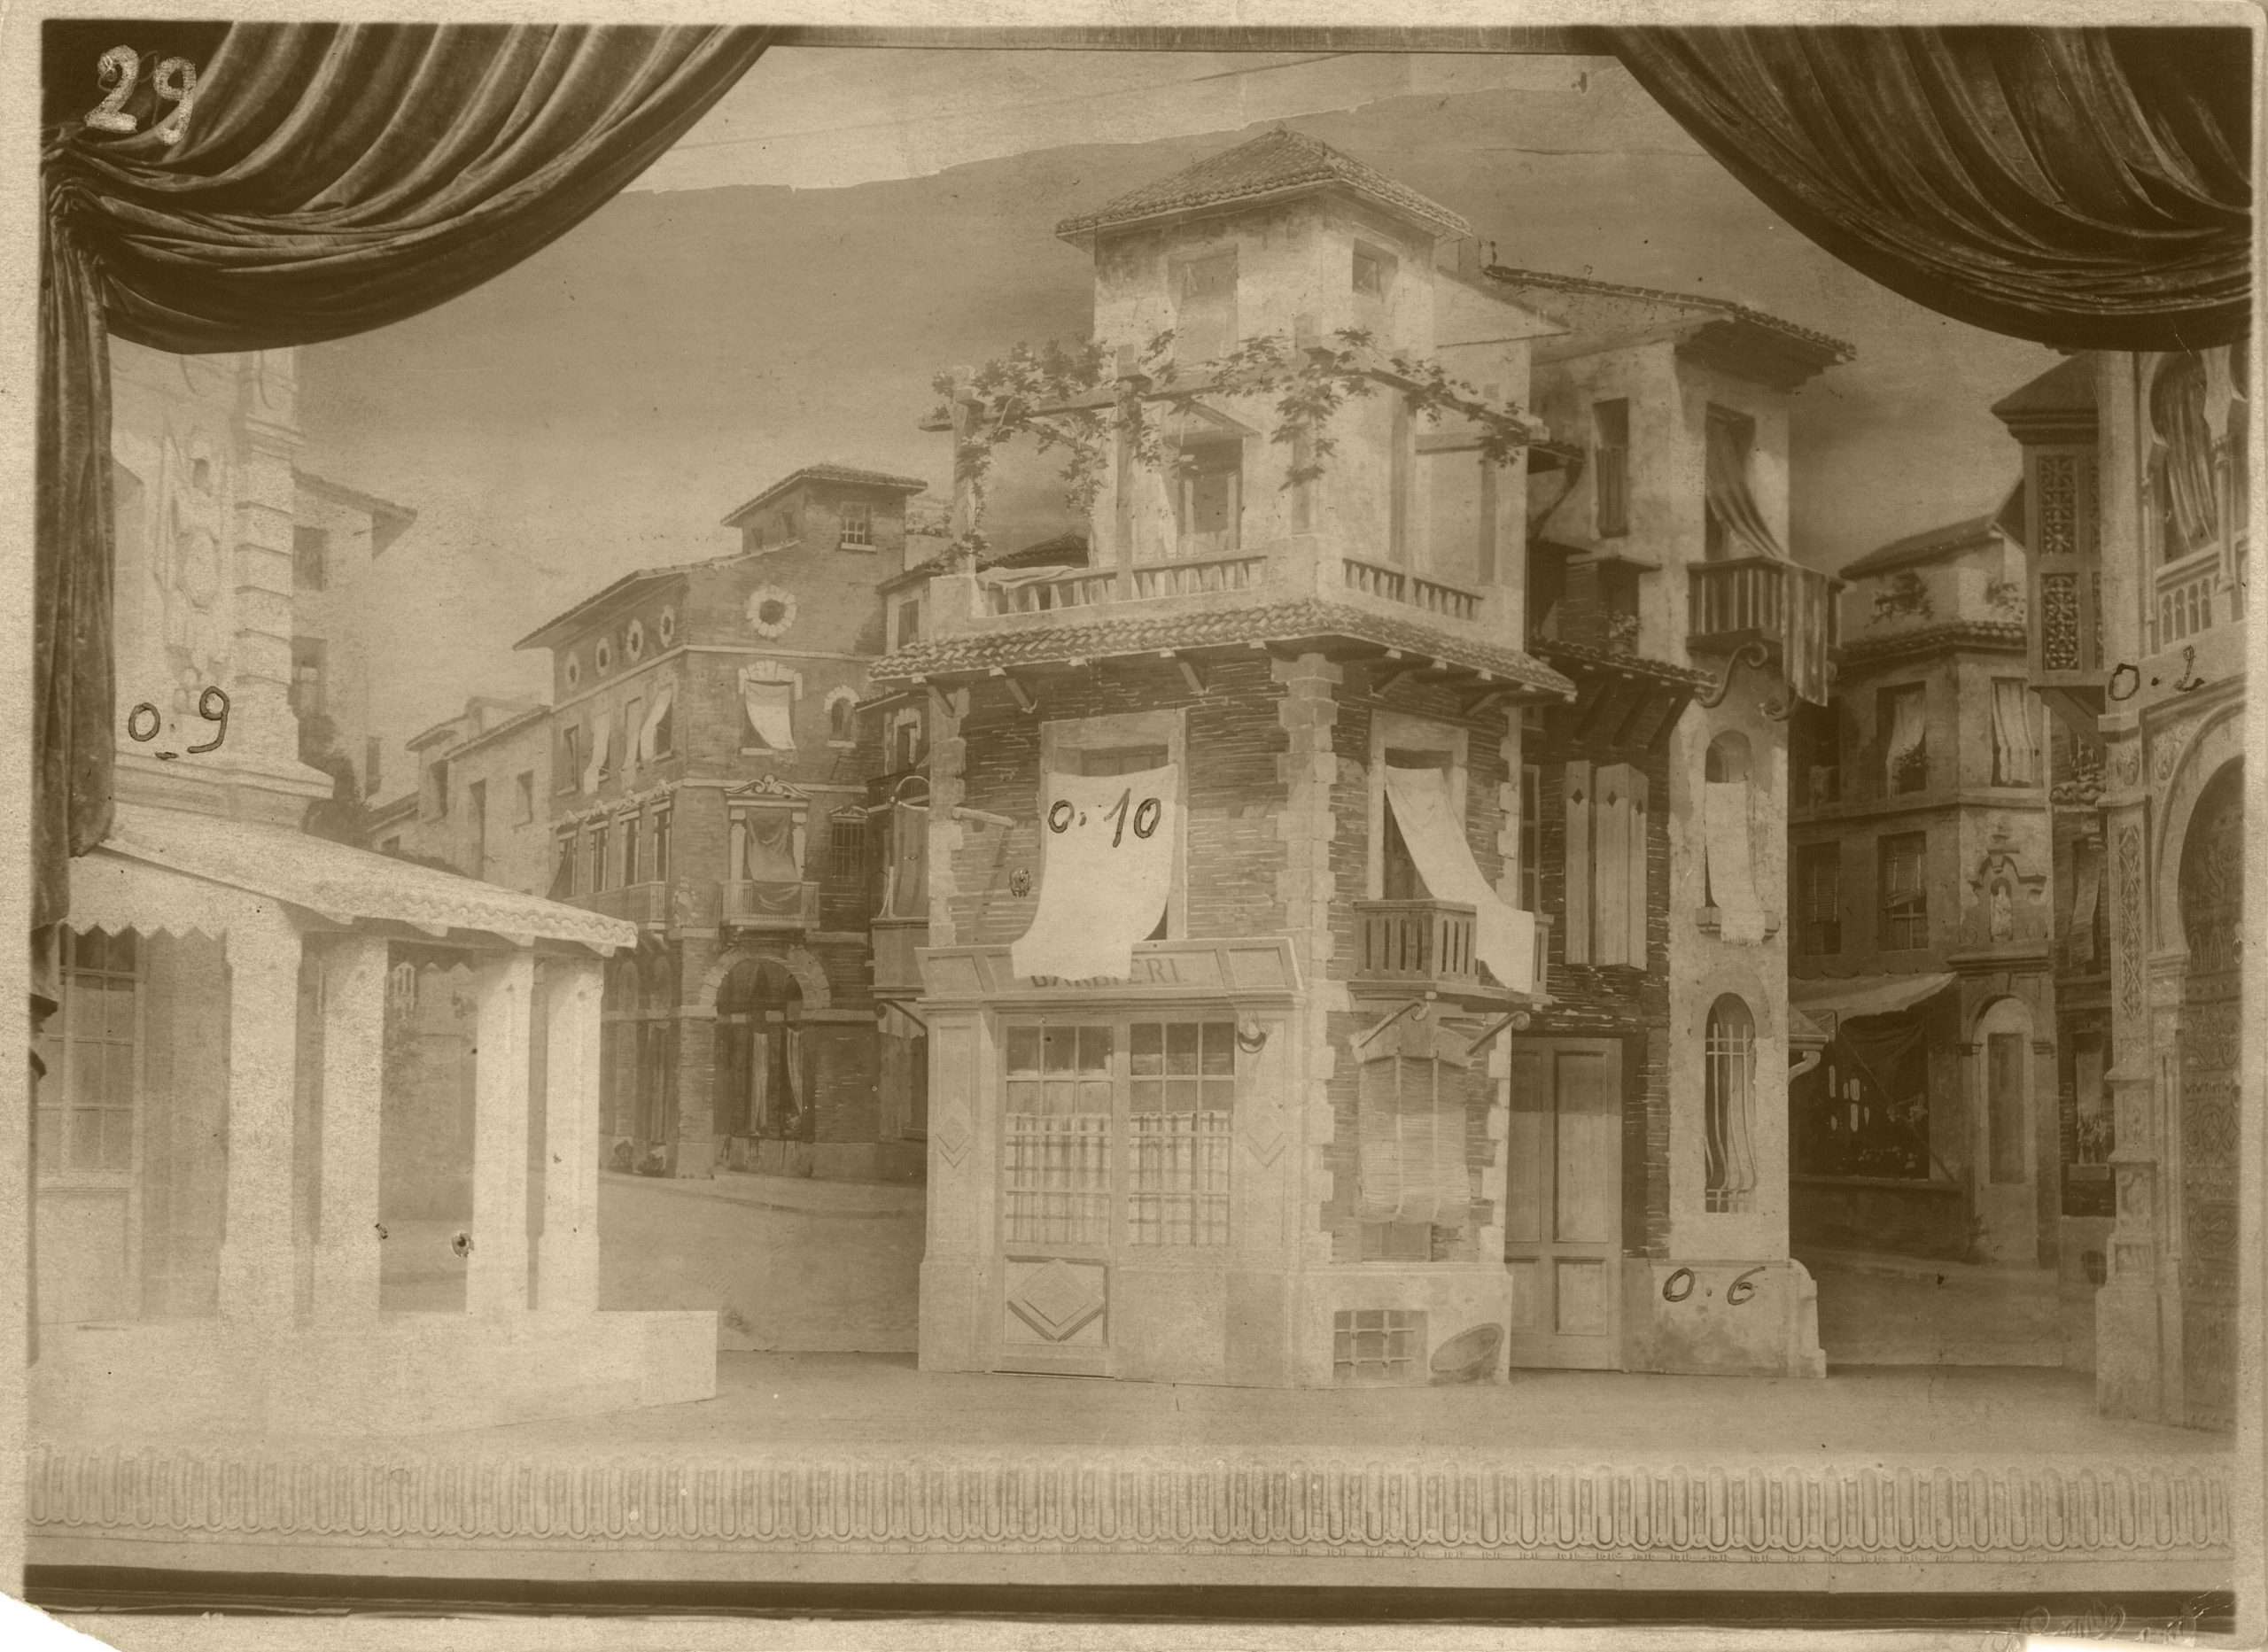 Scenery, Acts I and IV (1), Stadsschouwburg / Théâtre communal, Courtray, 1921